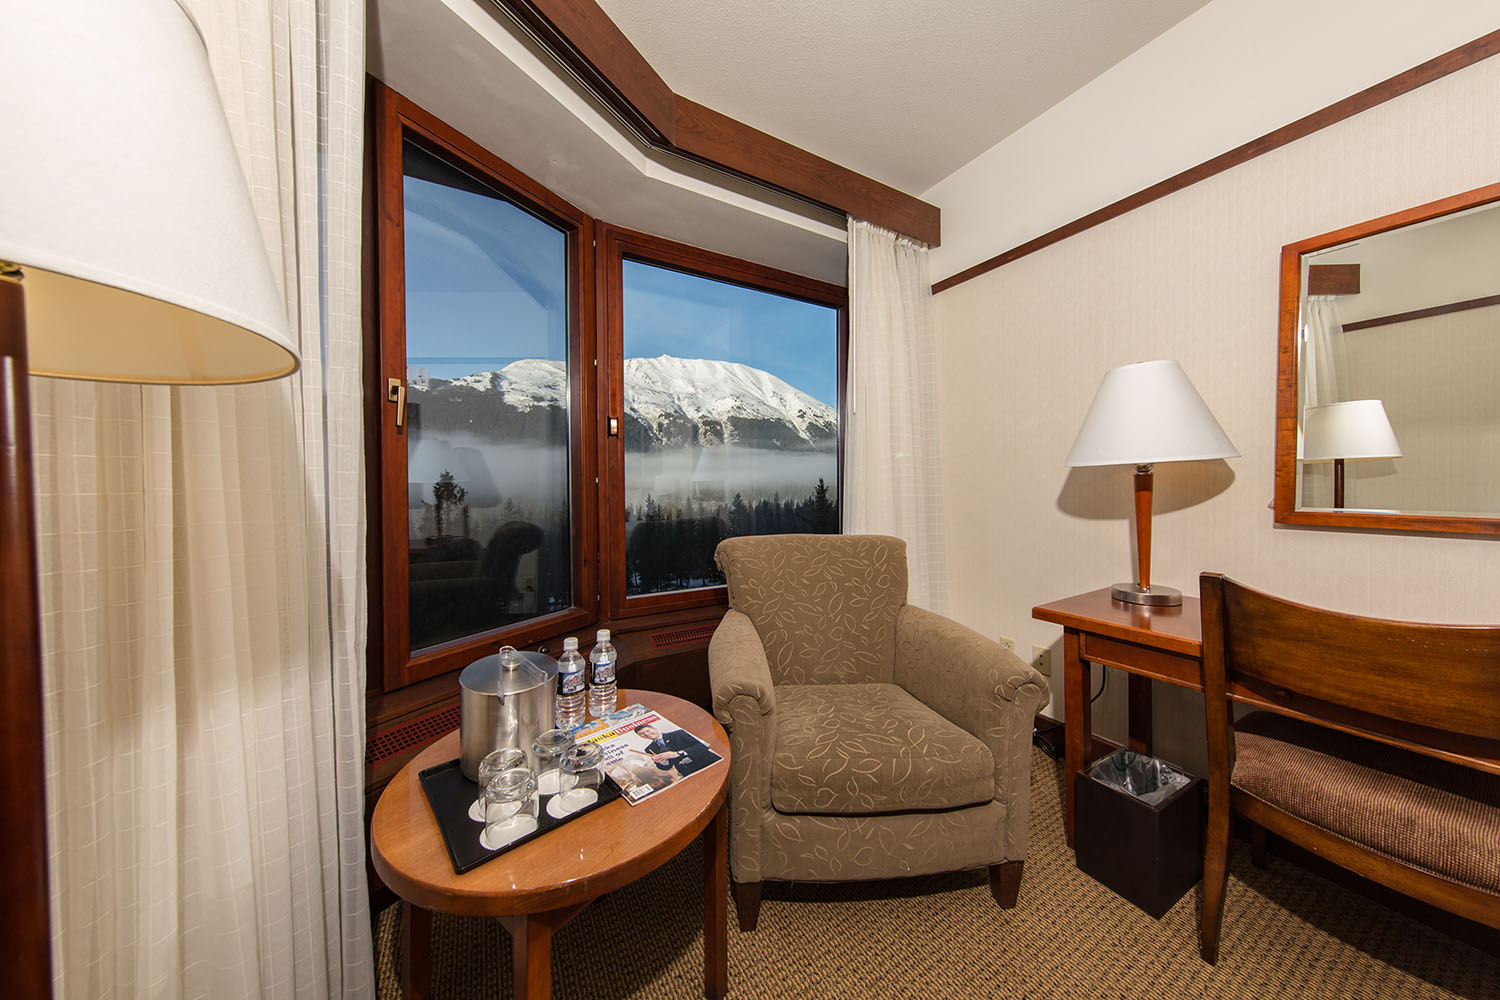 The resort has 304 luxury guest rooms, many of which offer stunning views of the mountain peaks and glaciers.